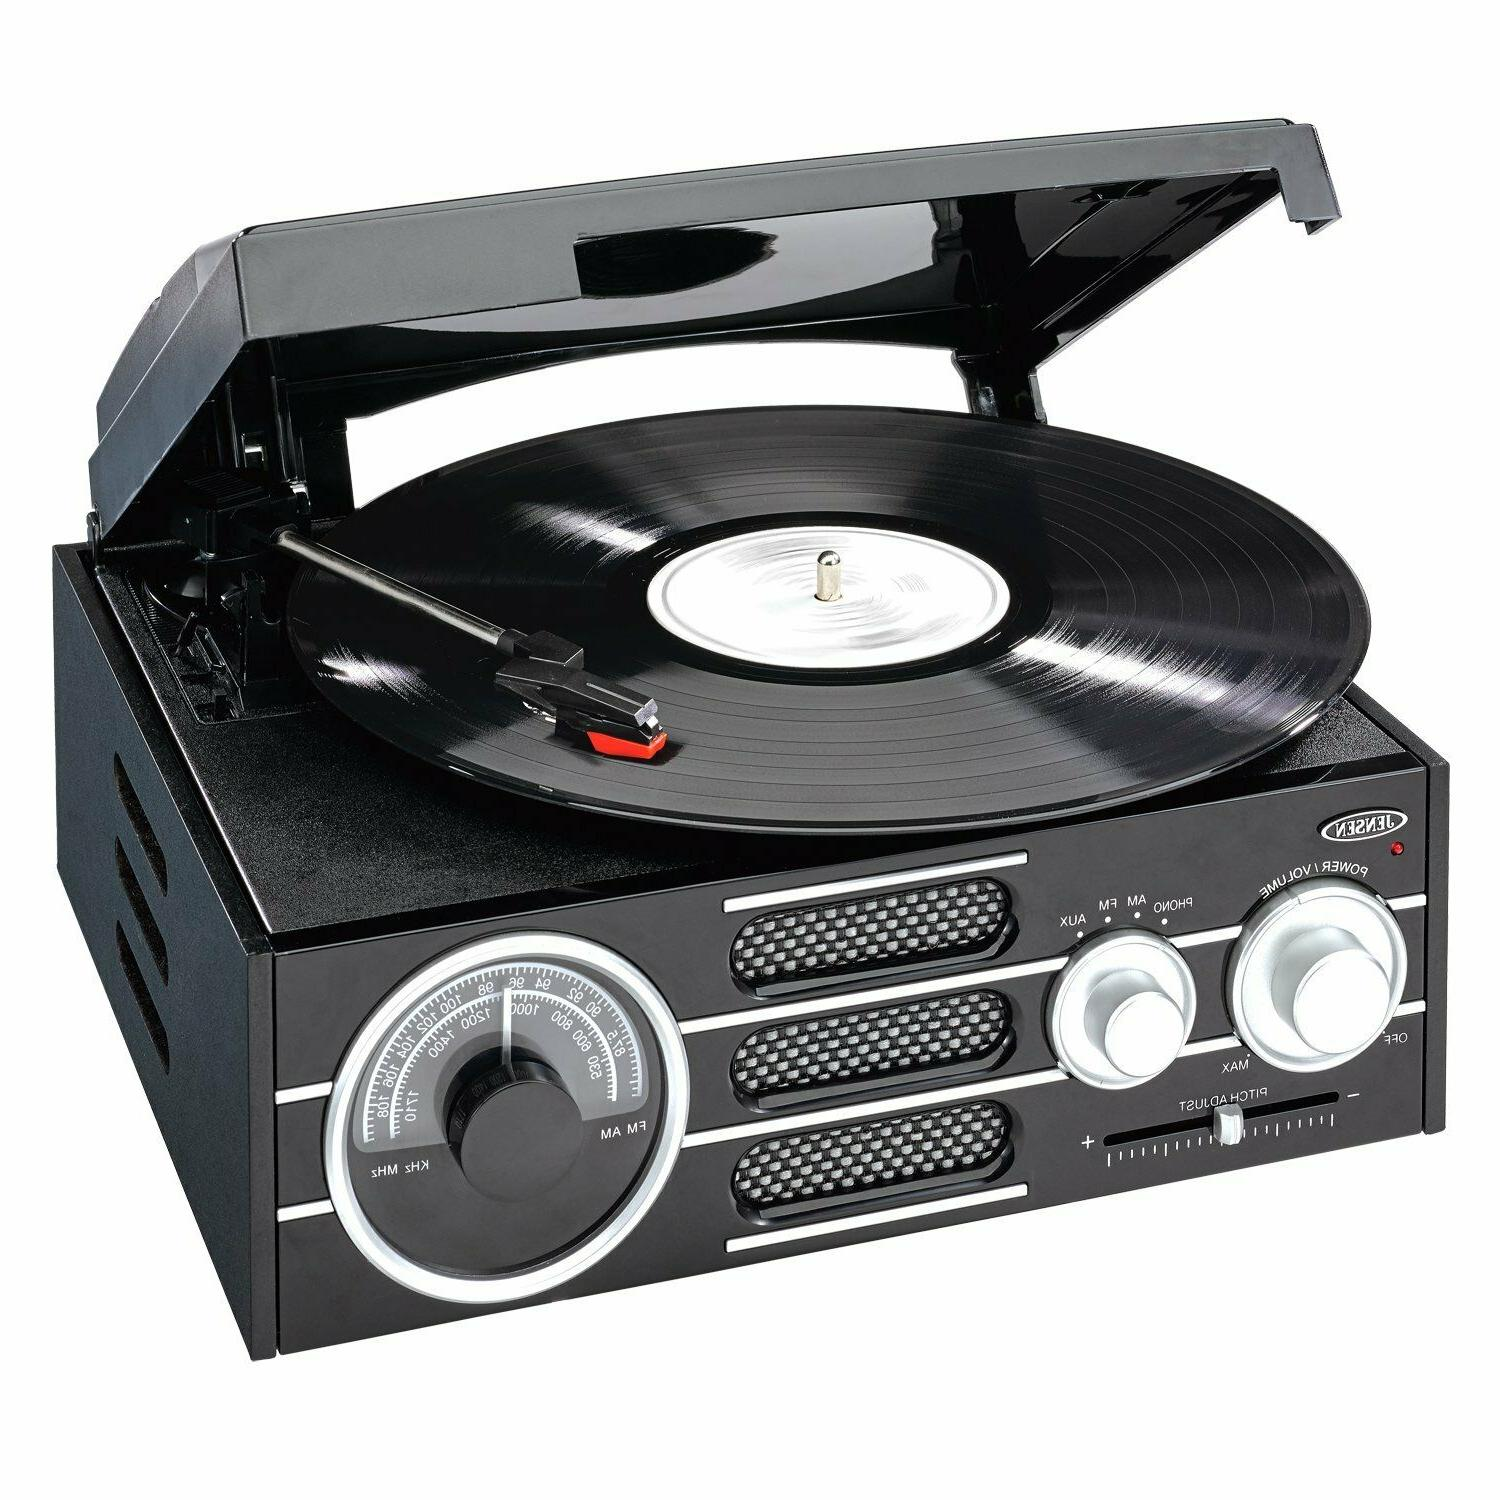 NEW Jensen 3-Speed Record Player Turntable RCA Software